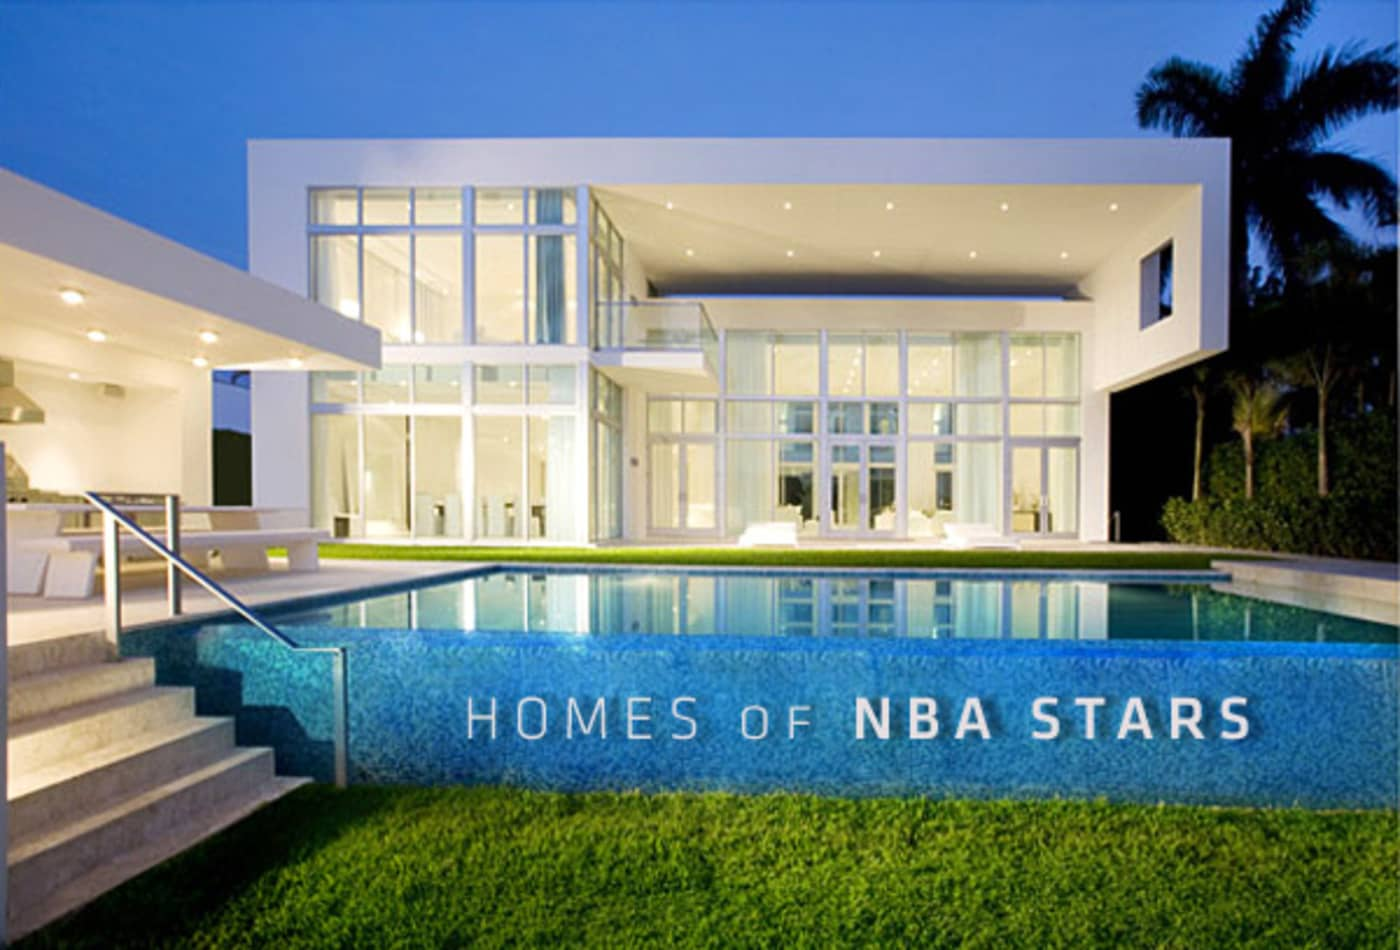 Cover-Chris-Bosh-Homes-of-NBA-Stars-CNBC.jpg